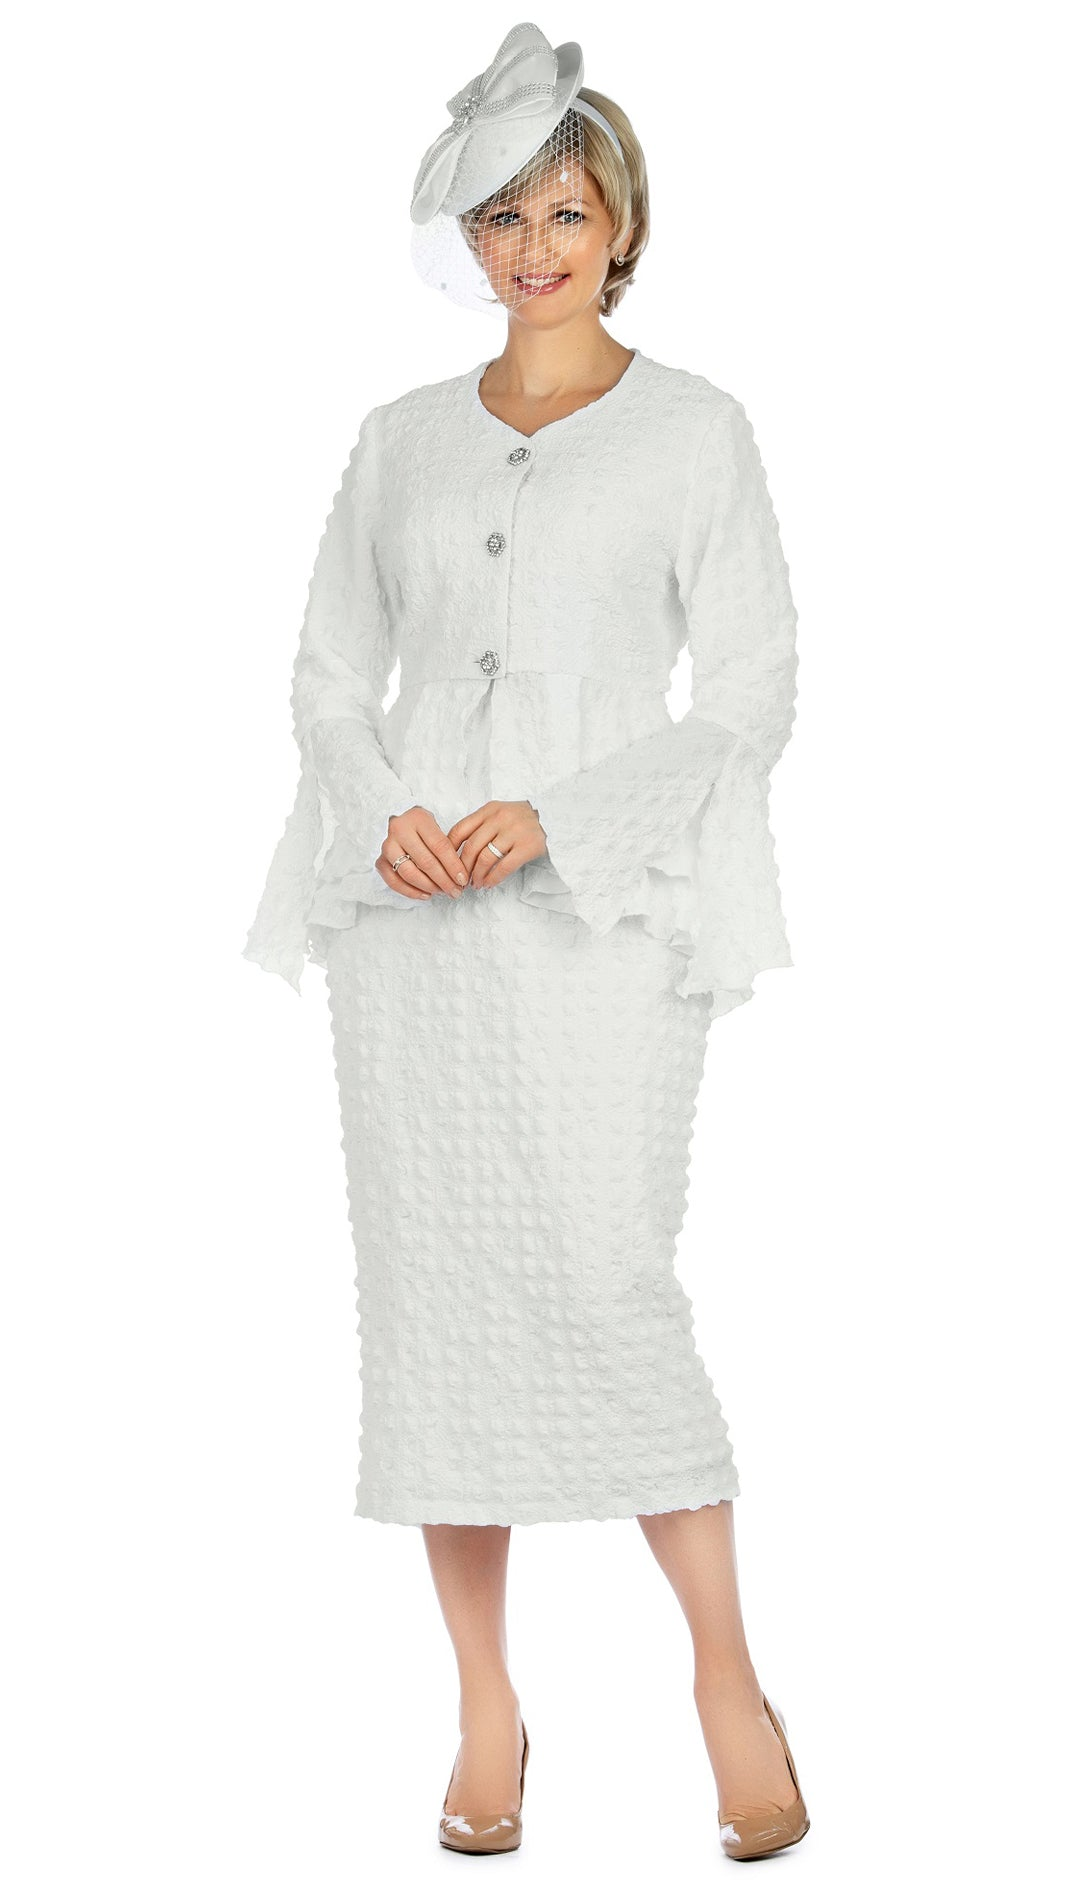 Giovanna Suit 0944-White - Church Suits For Less